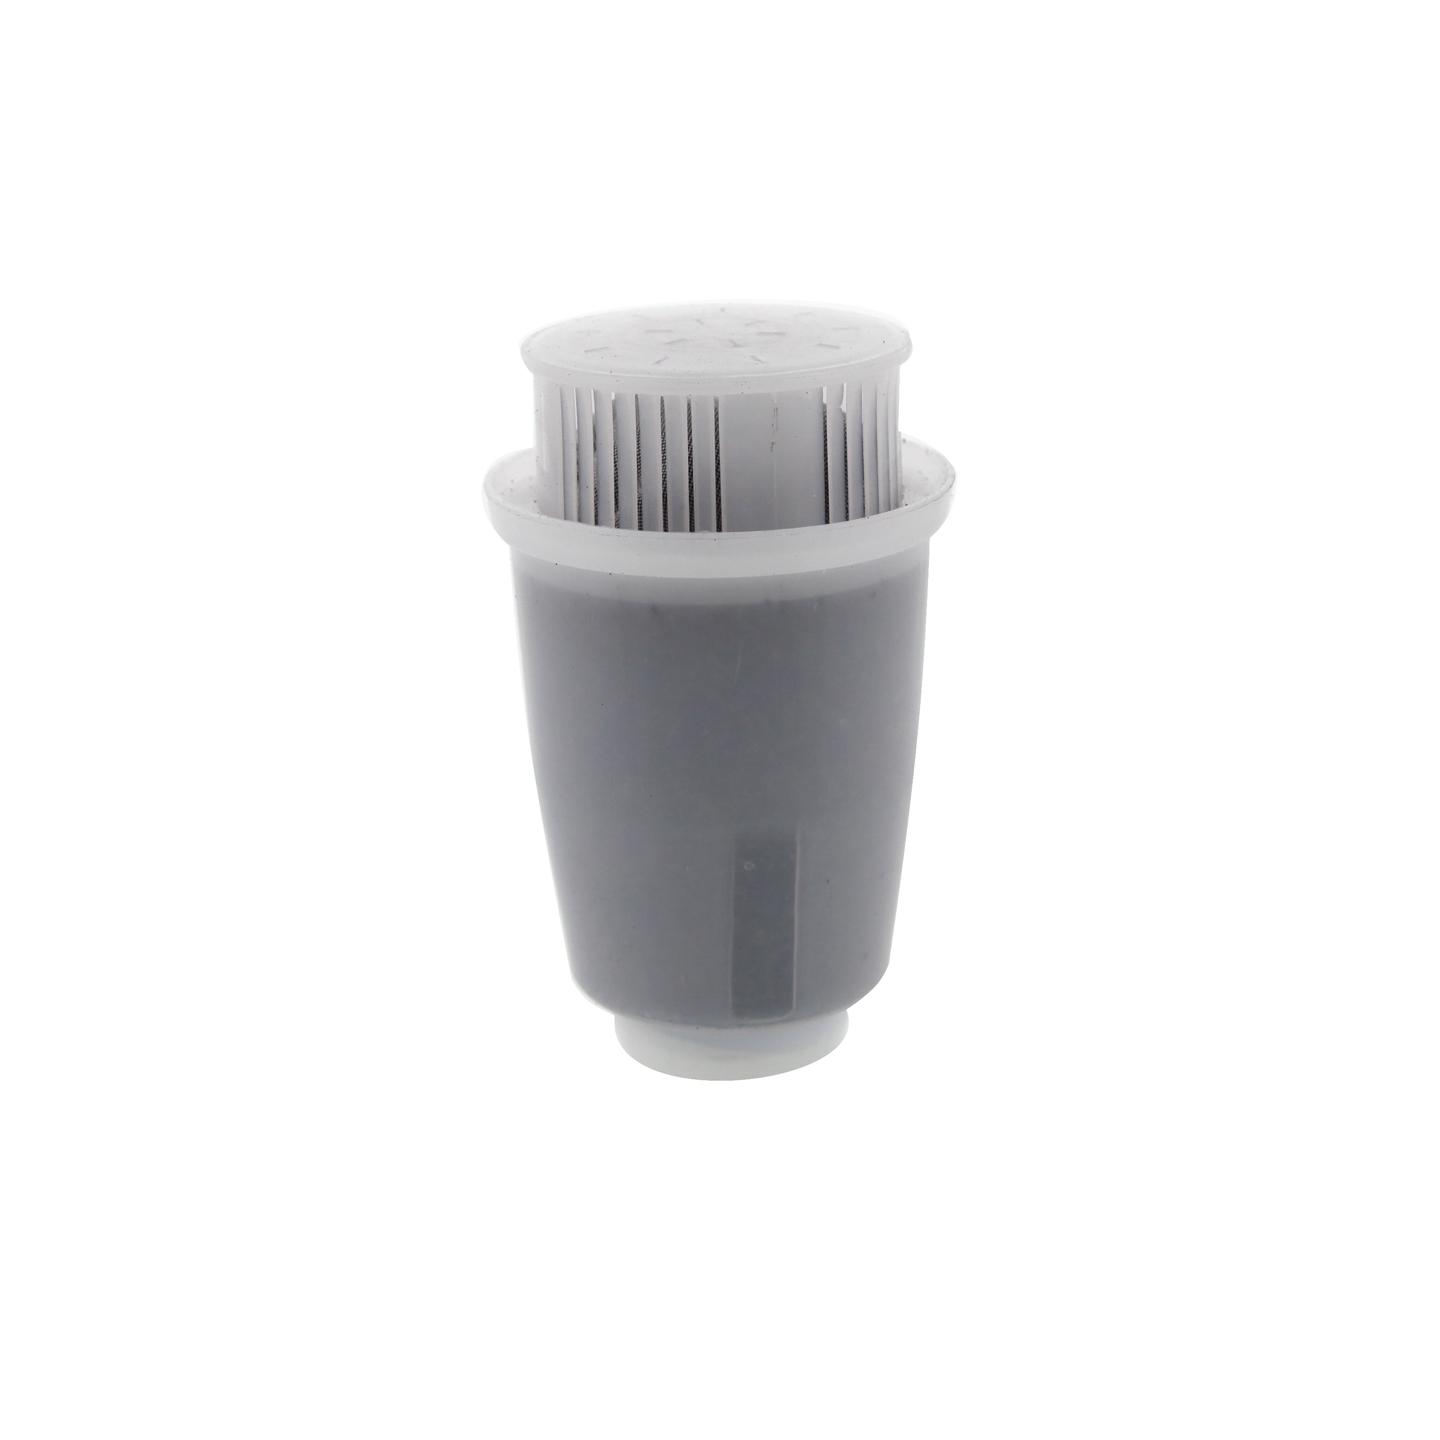 ZR-001-B 5-Stage Dual Ion Exchange Filter Replacement Cartridge for Brita Pitcher Filters by ZeroWater ZEROWATER-ZR-001-B